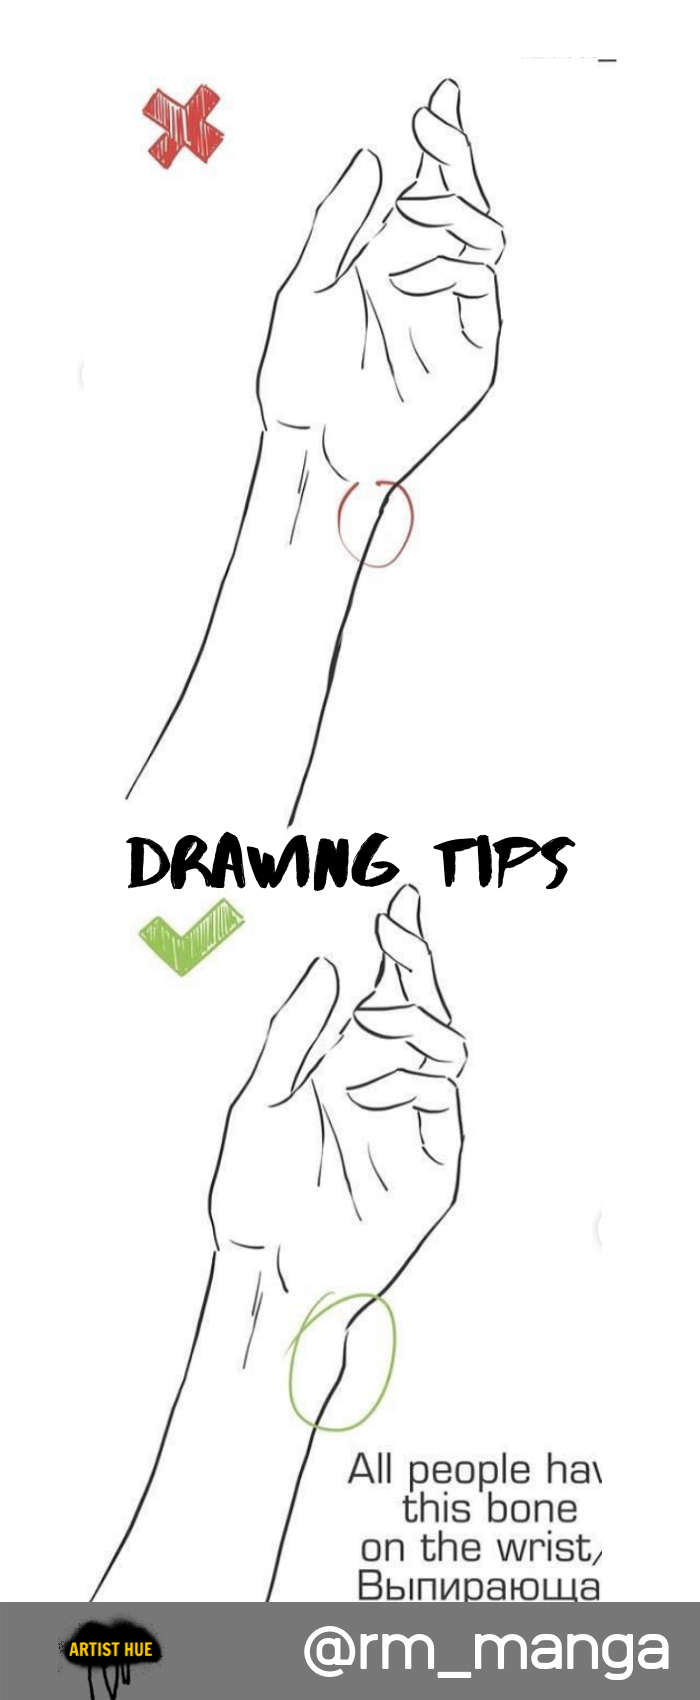 Drawing tips  How to draw hands  How to draw for beginners  beginner guide for artists